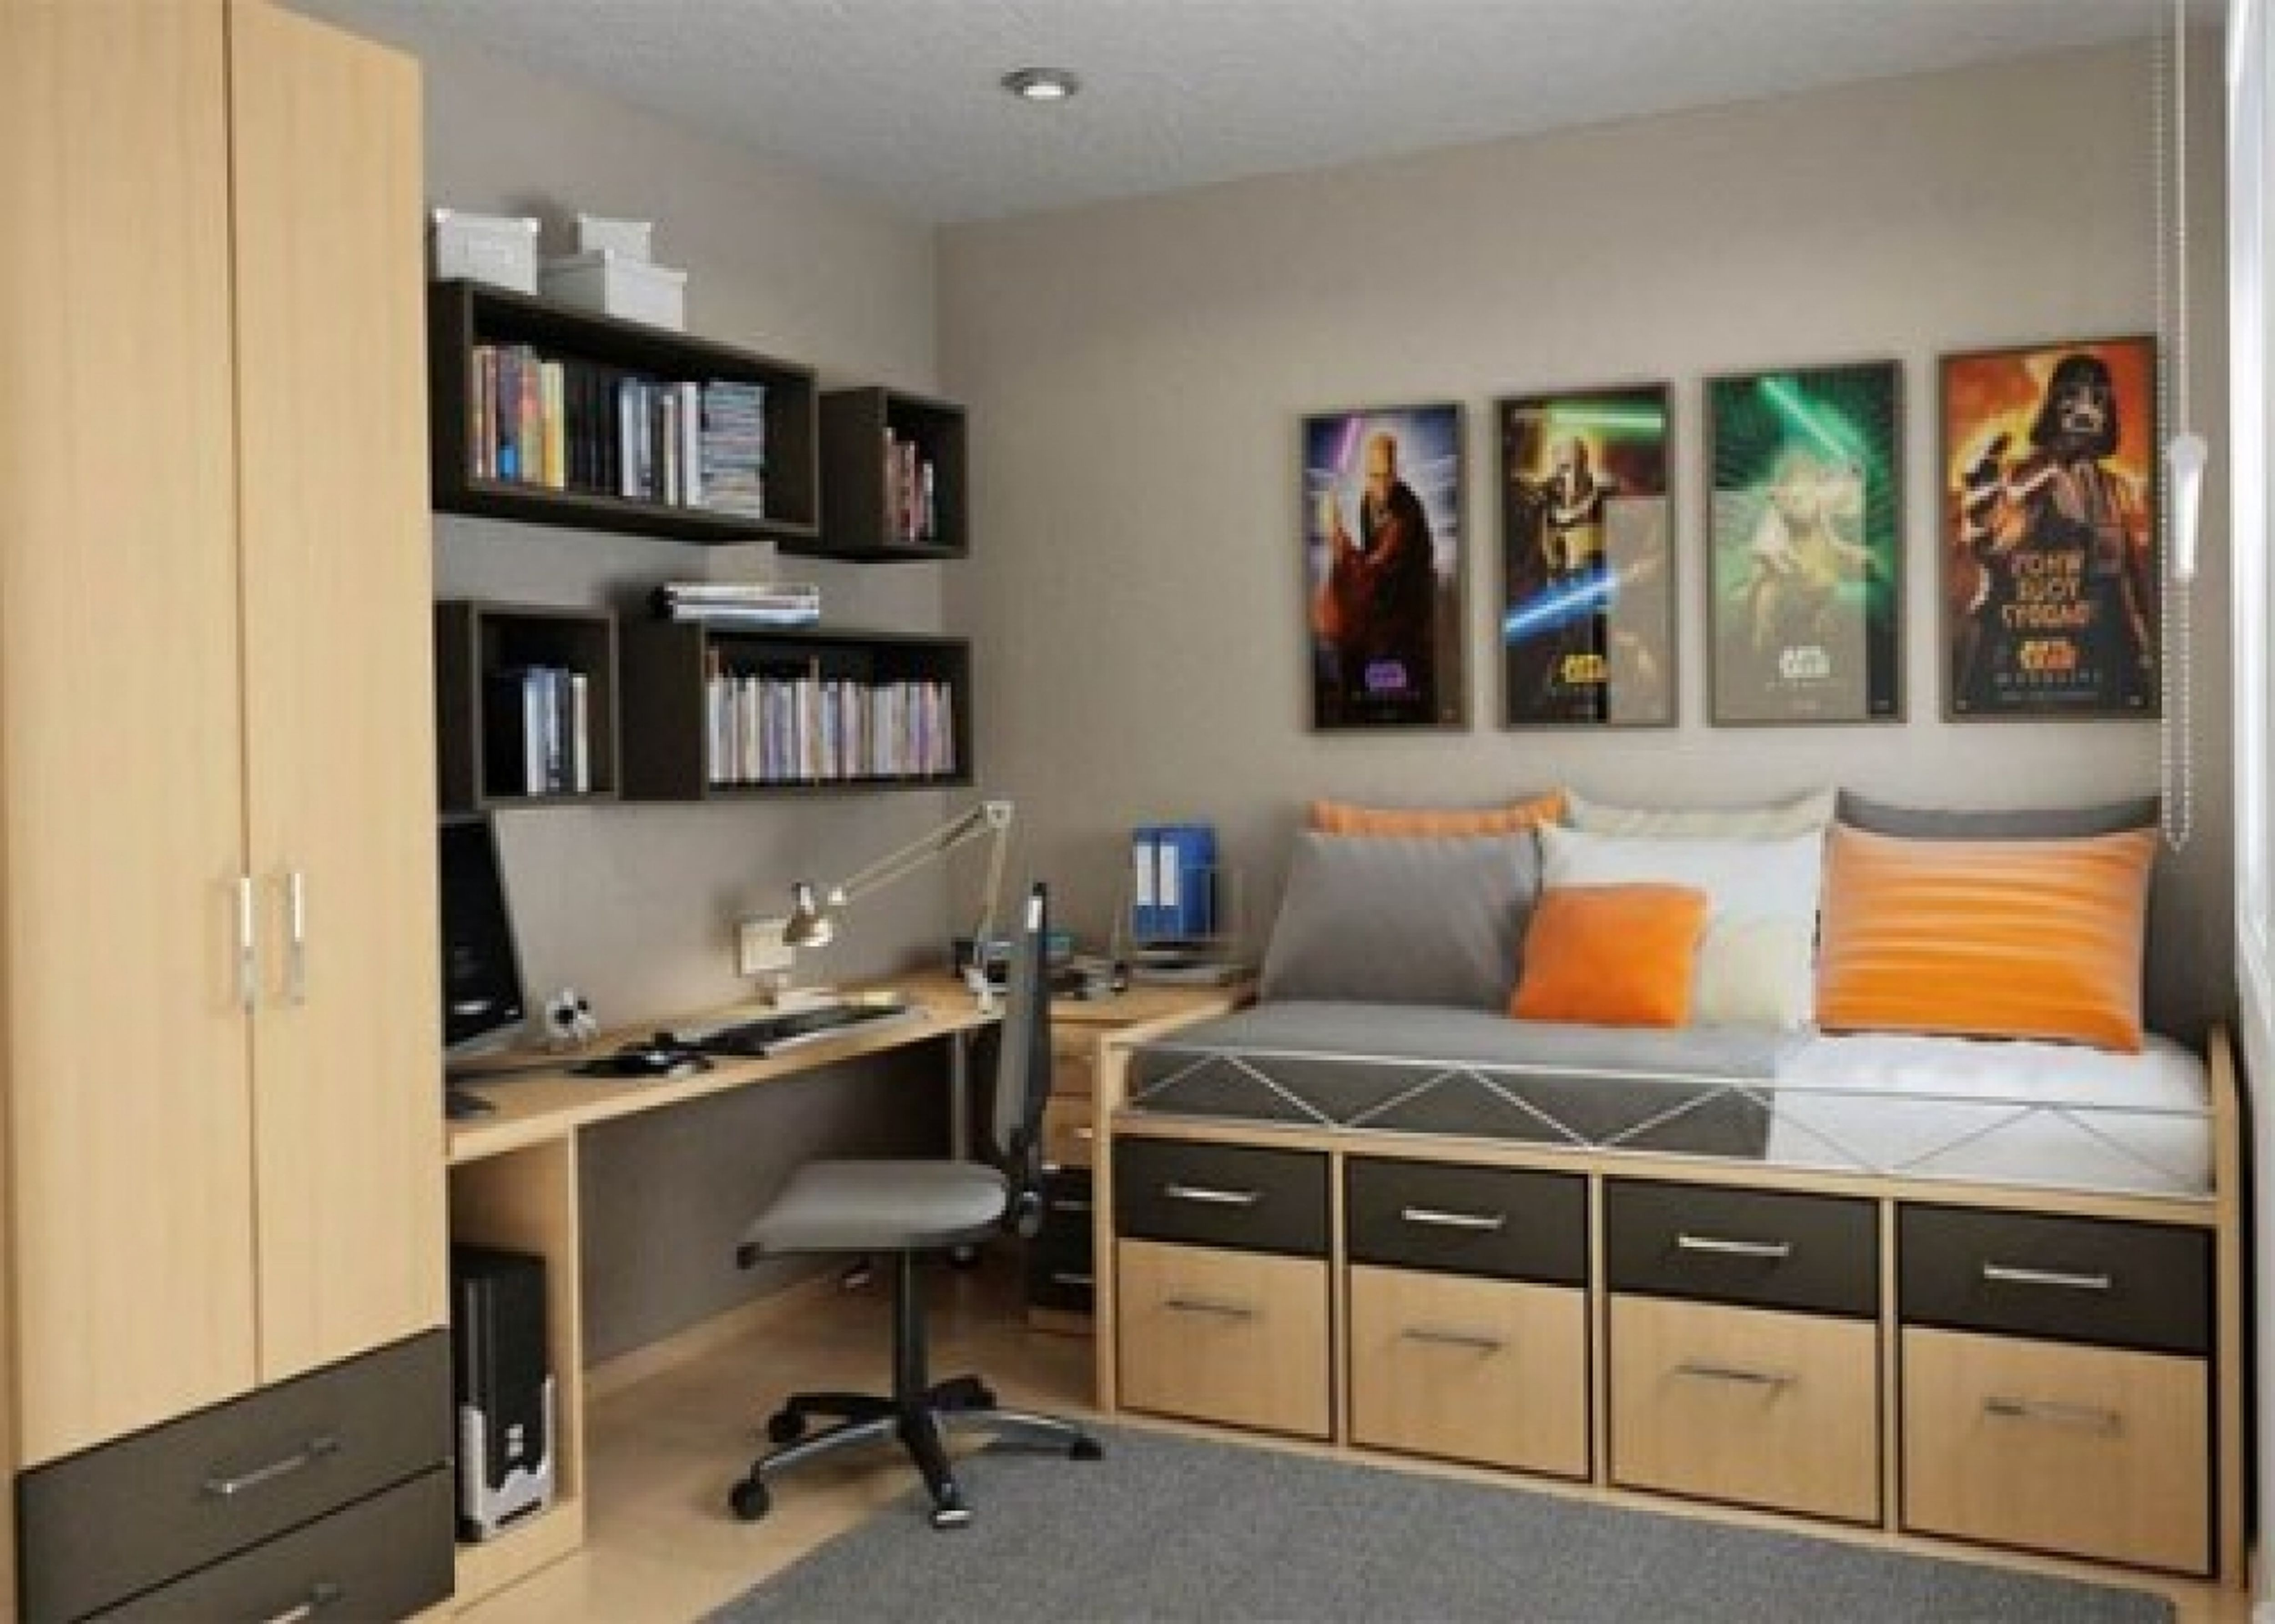 - Small Boys Room Ideas With Storage Under Bed And Study Desk